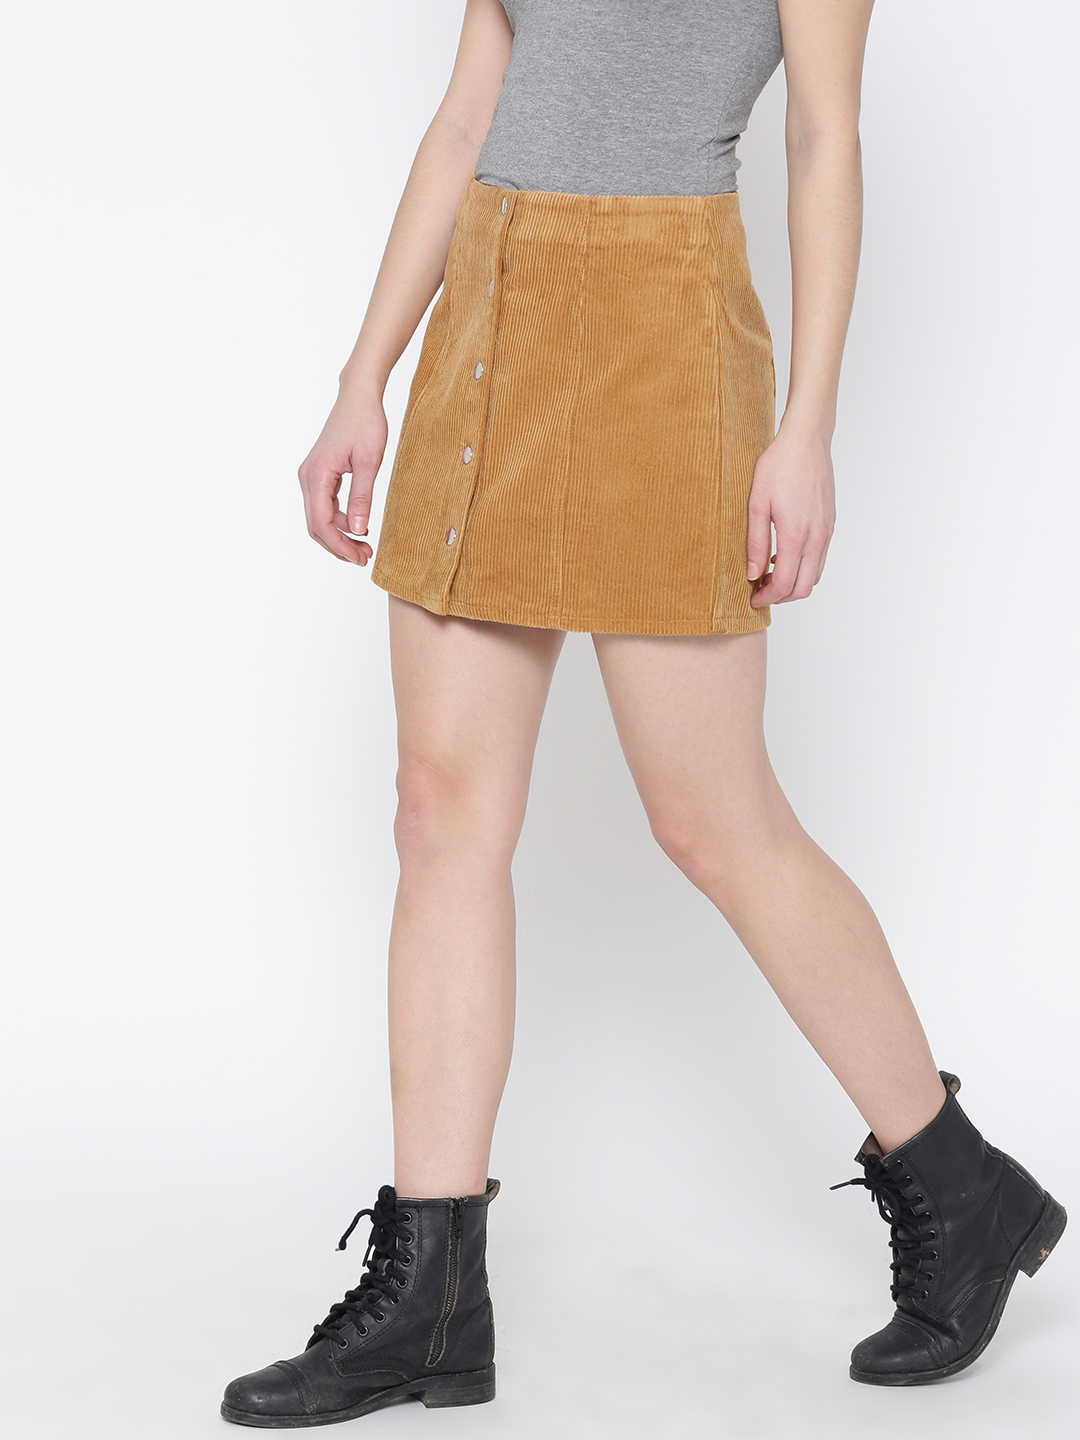 37d2579f5a0db6 Buy FOREVER 21 Mustard Yellow Corduroy A Line Skirt - Skirts for ...